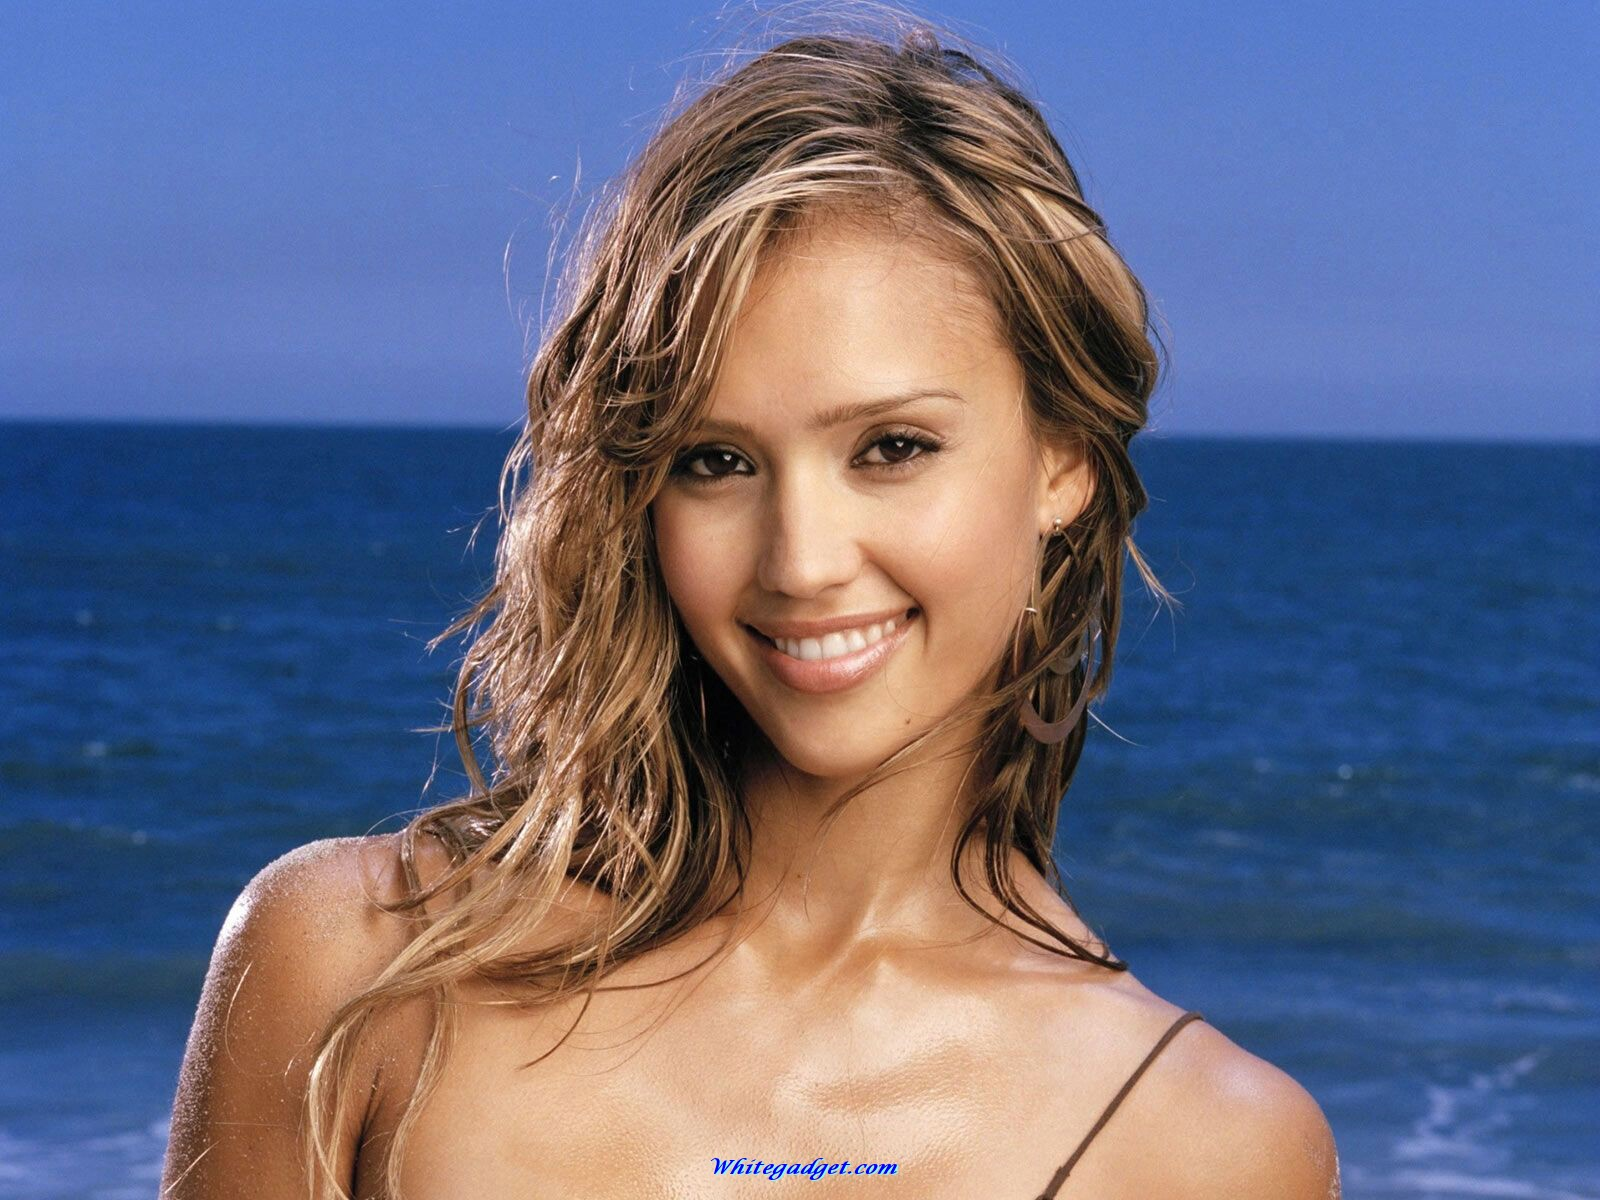 Best Jessica Alba Background on HipWallpaper Jessica Cruz